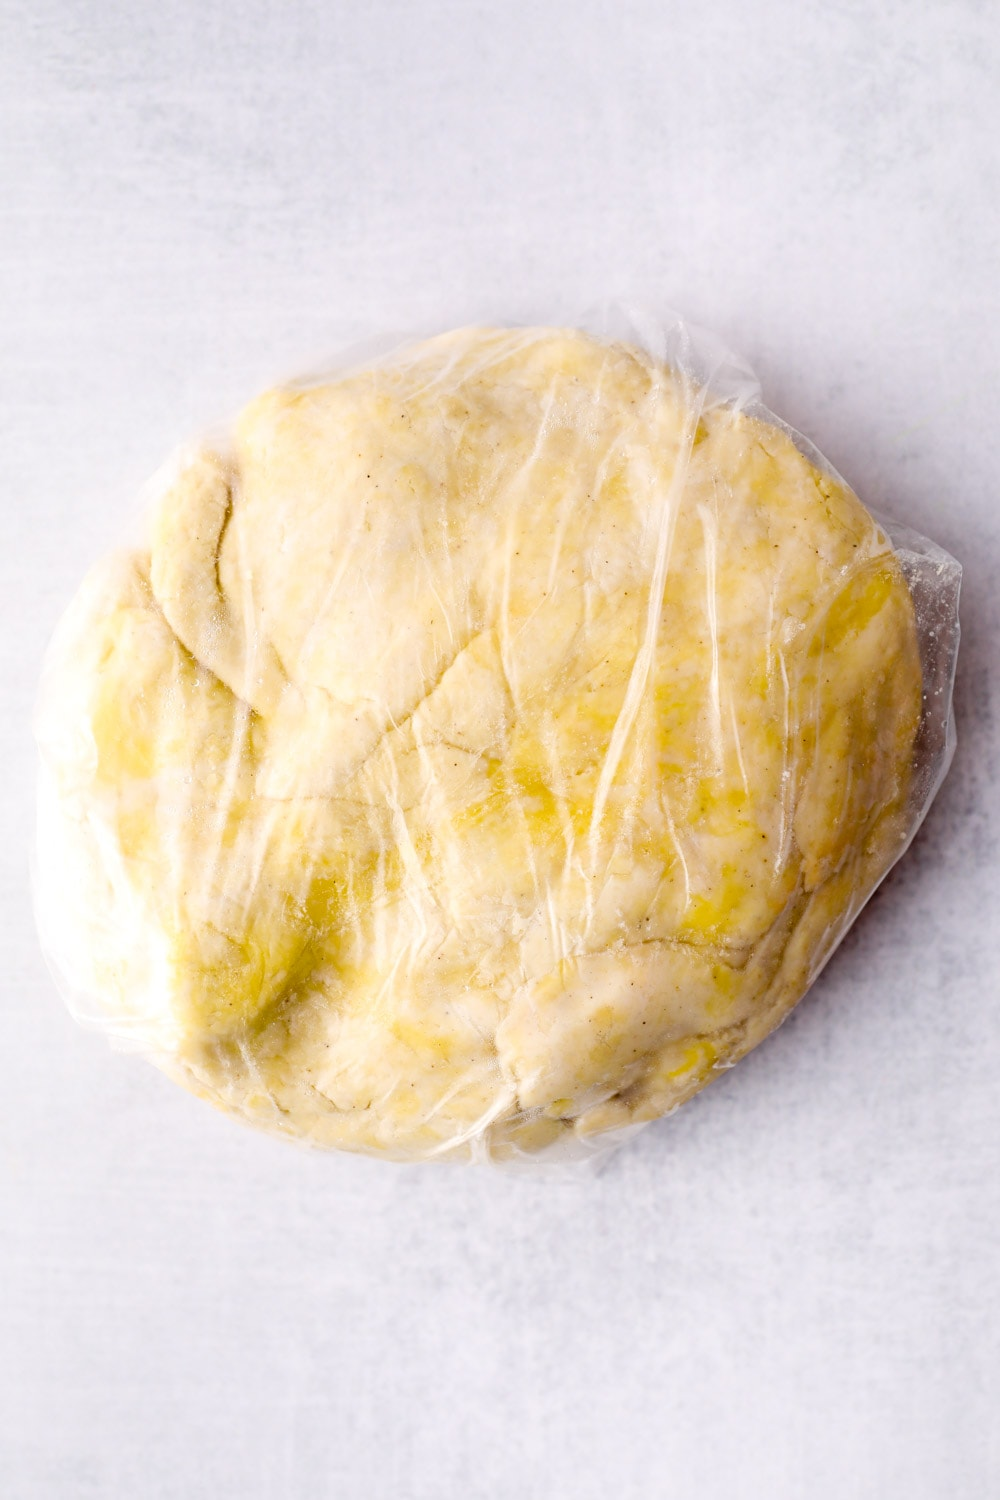 Gluten Free Pie Crust dough wrapped in plastic ready to chill in the fridge for one hour.